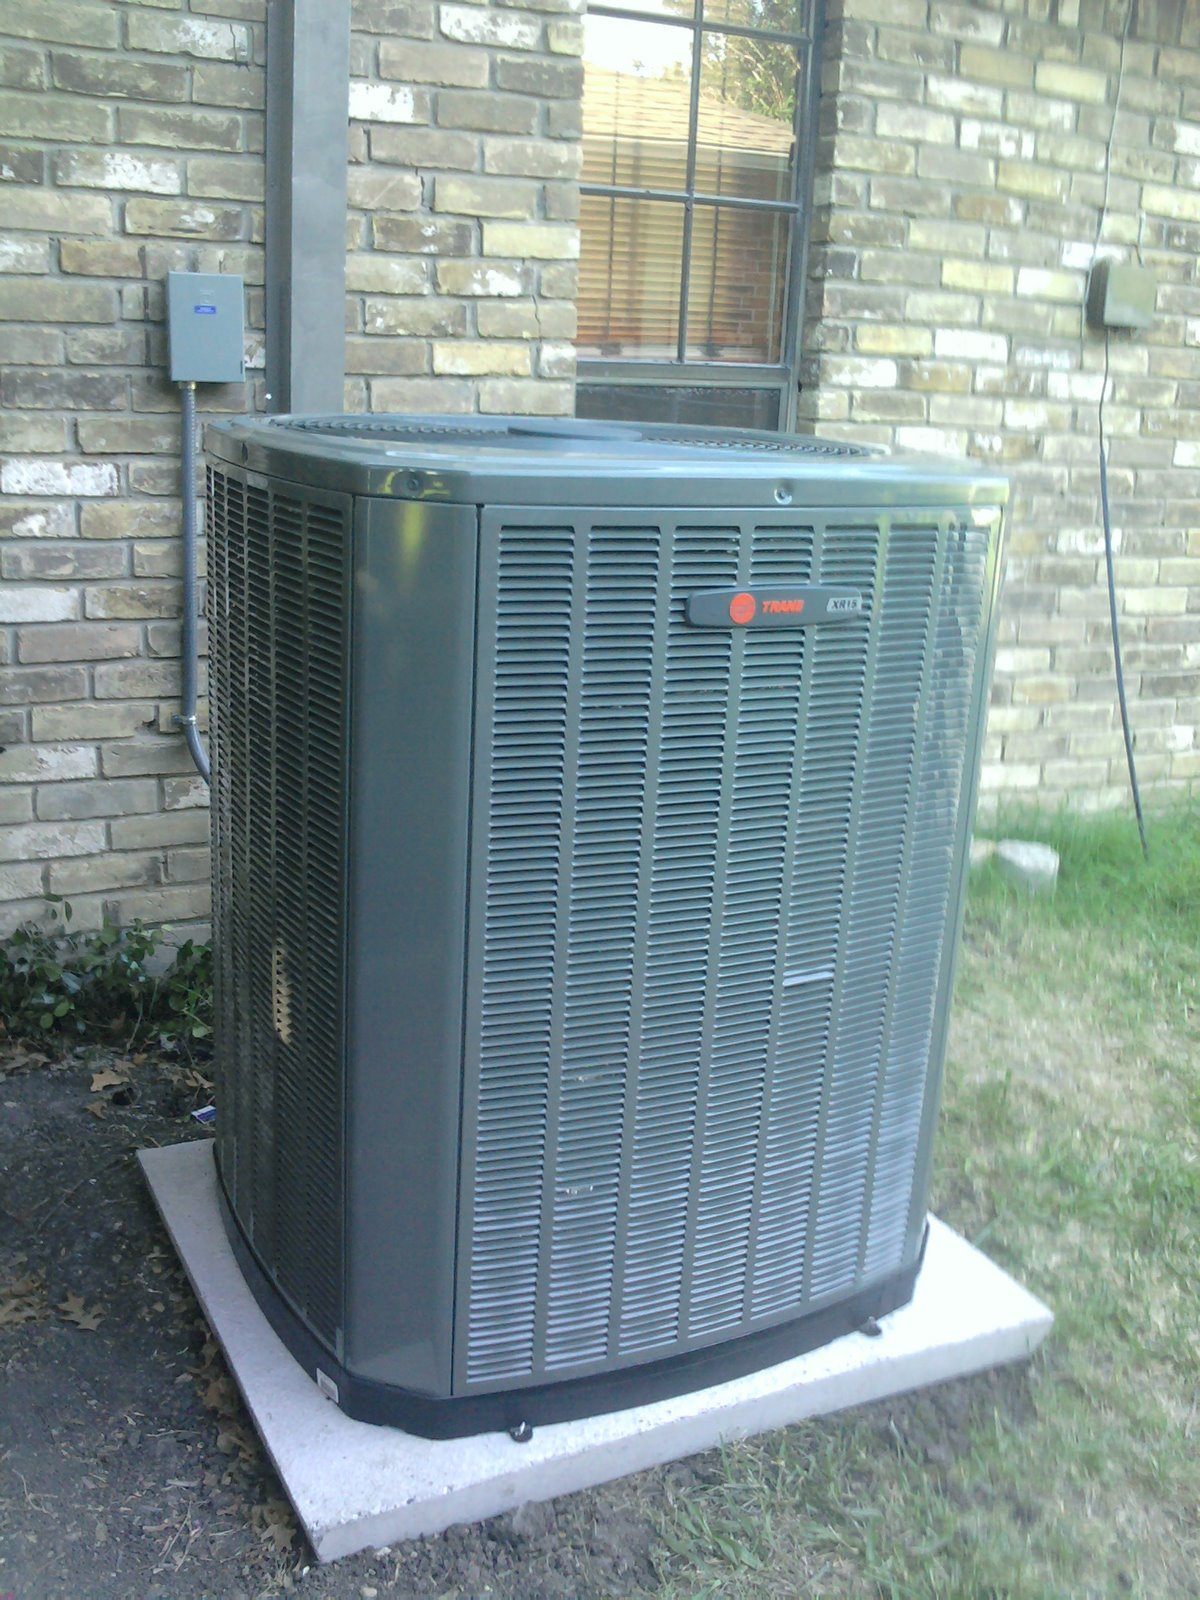 The new outdoor unit is a Trane XR15 heat pump and the new